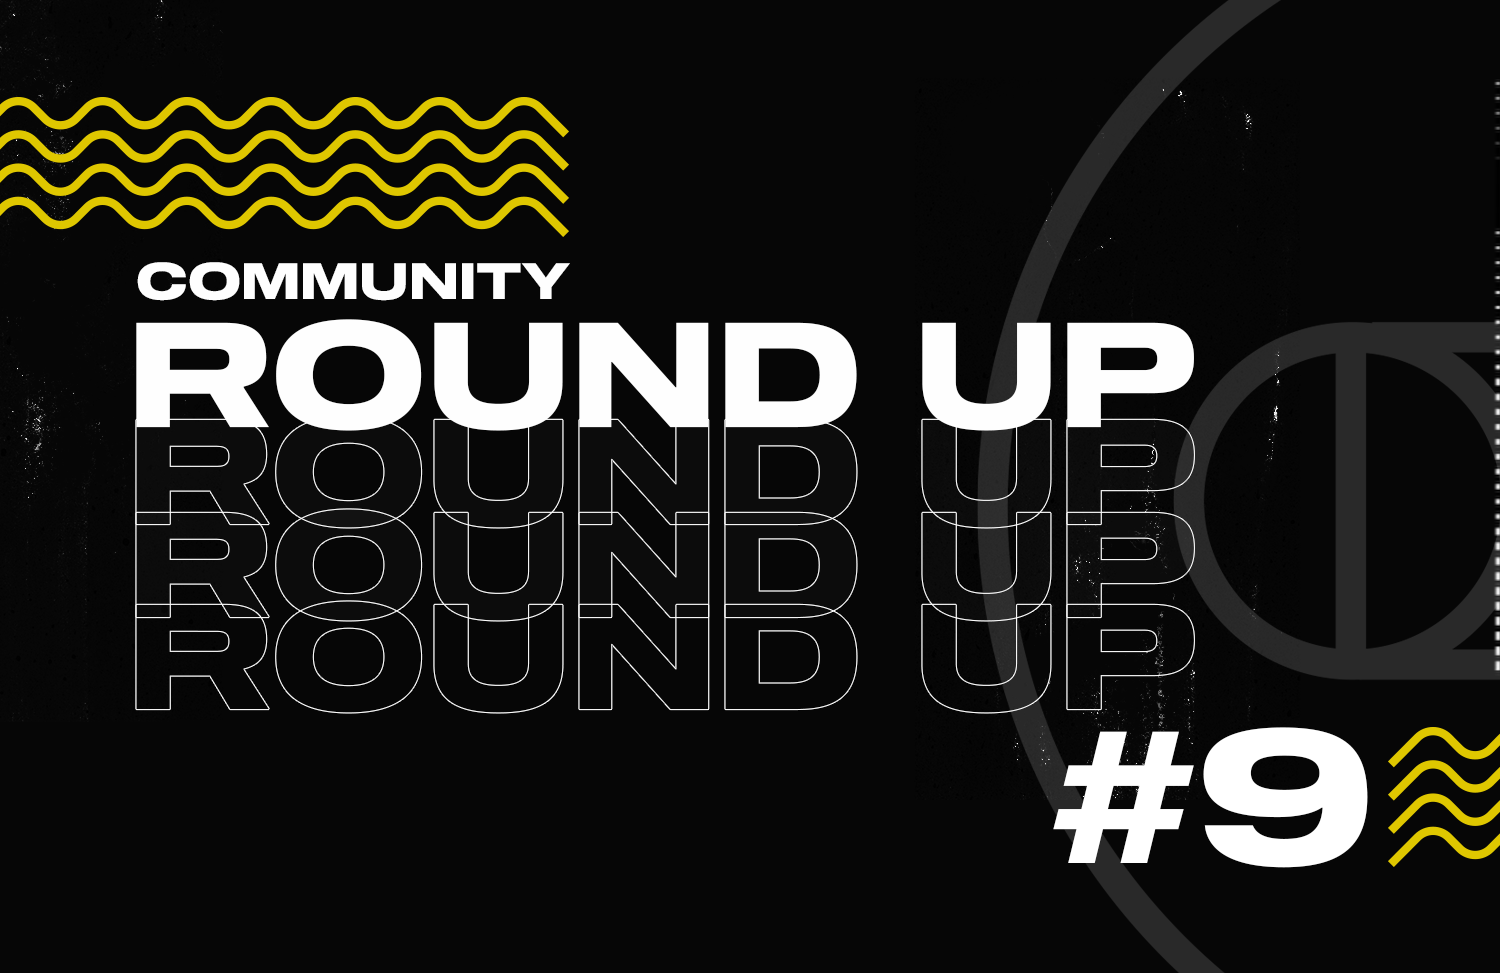 Community Roundups are back, and better than ever...